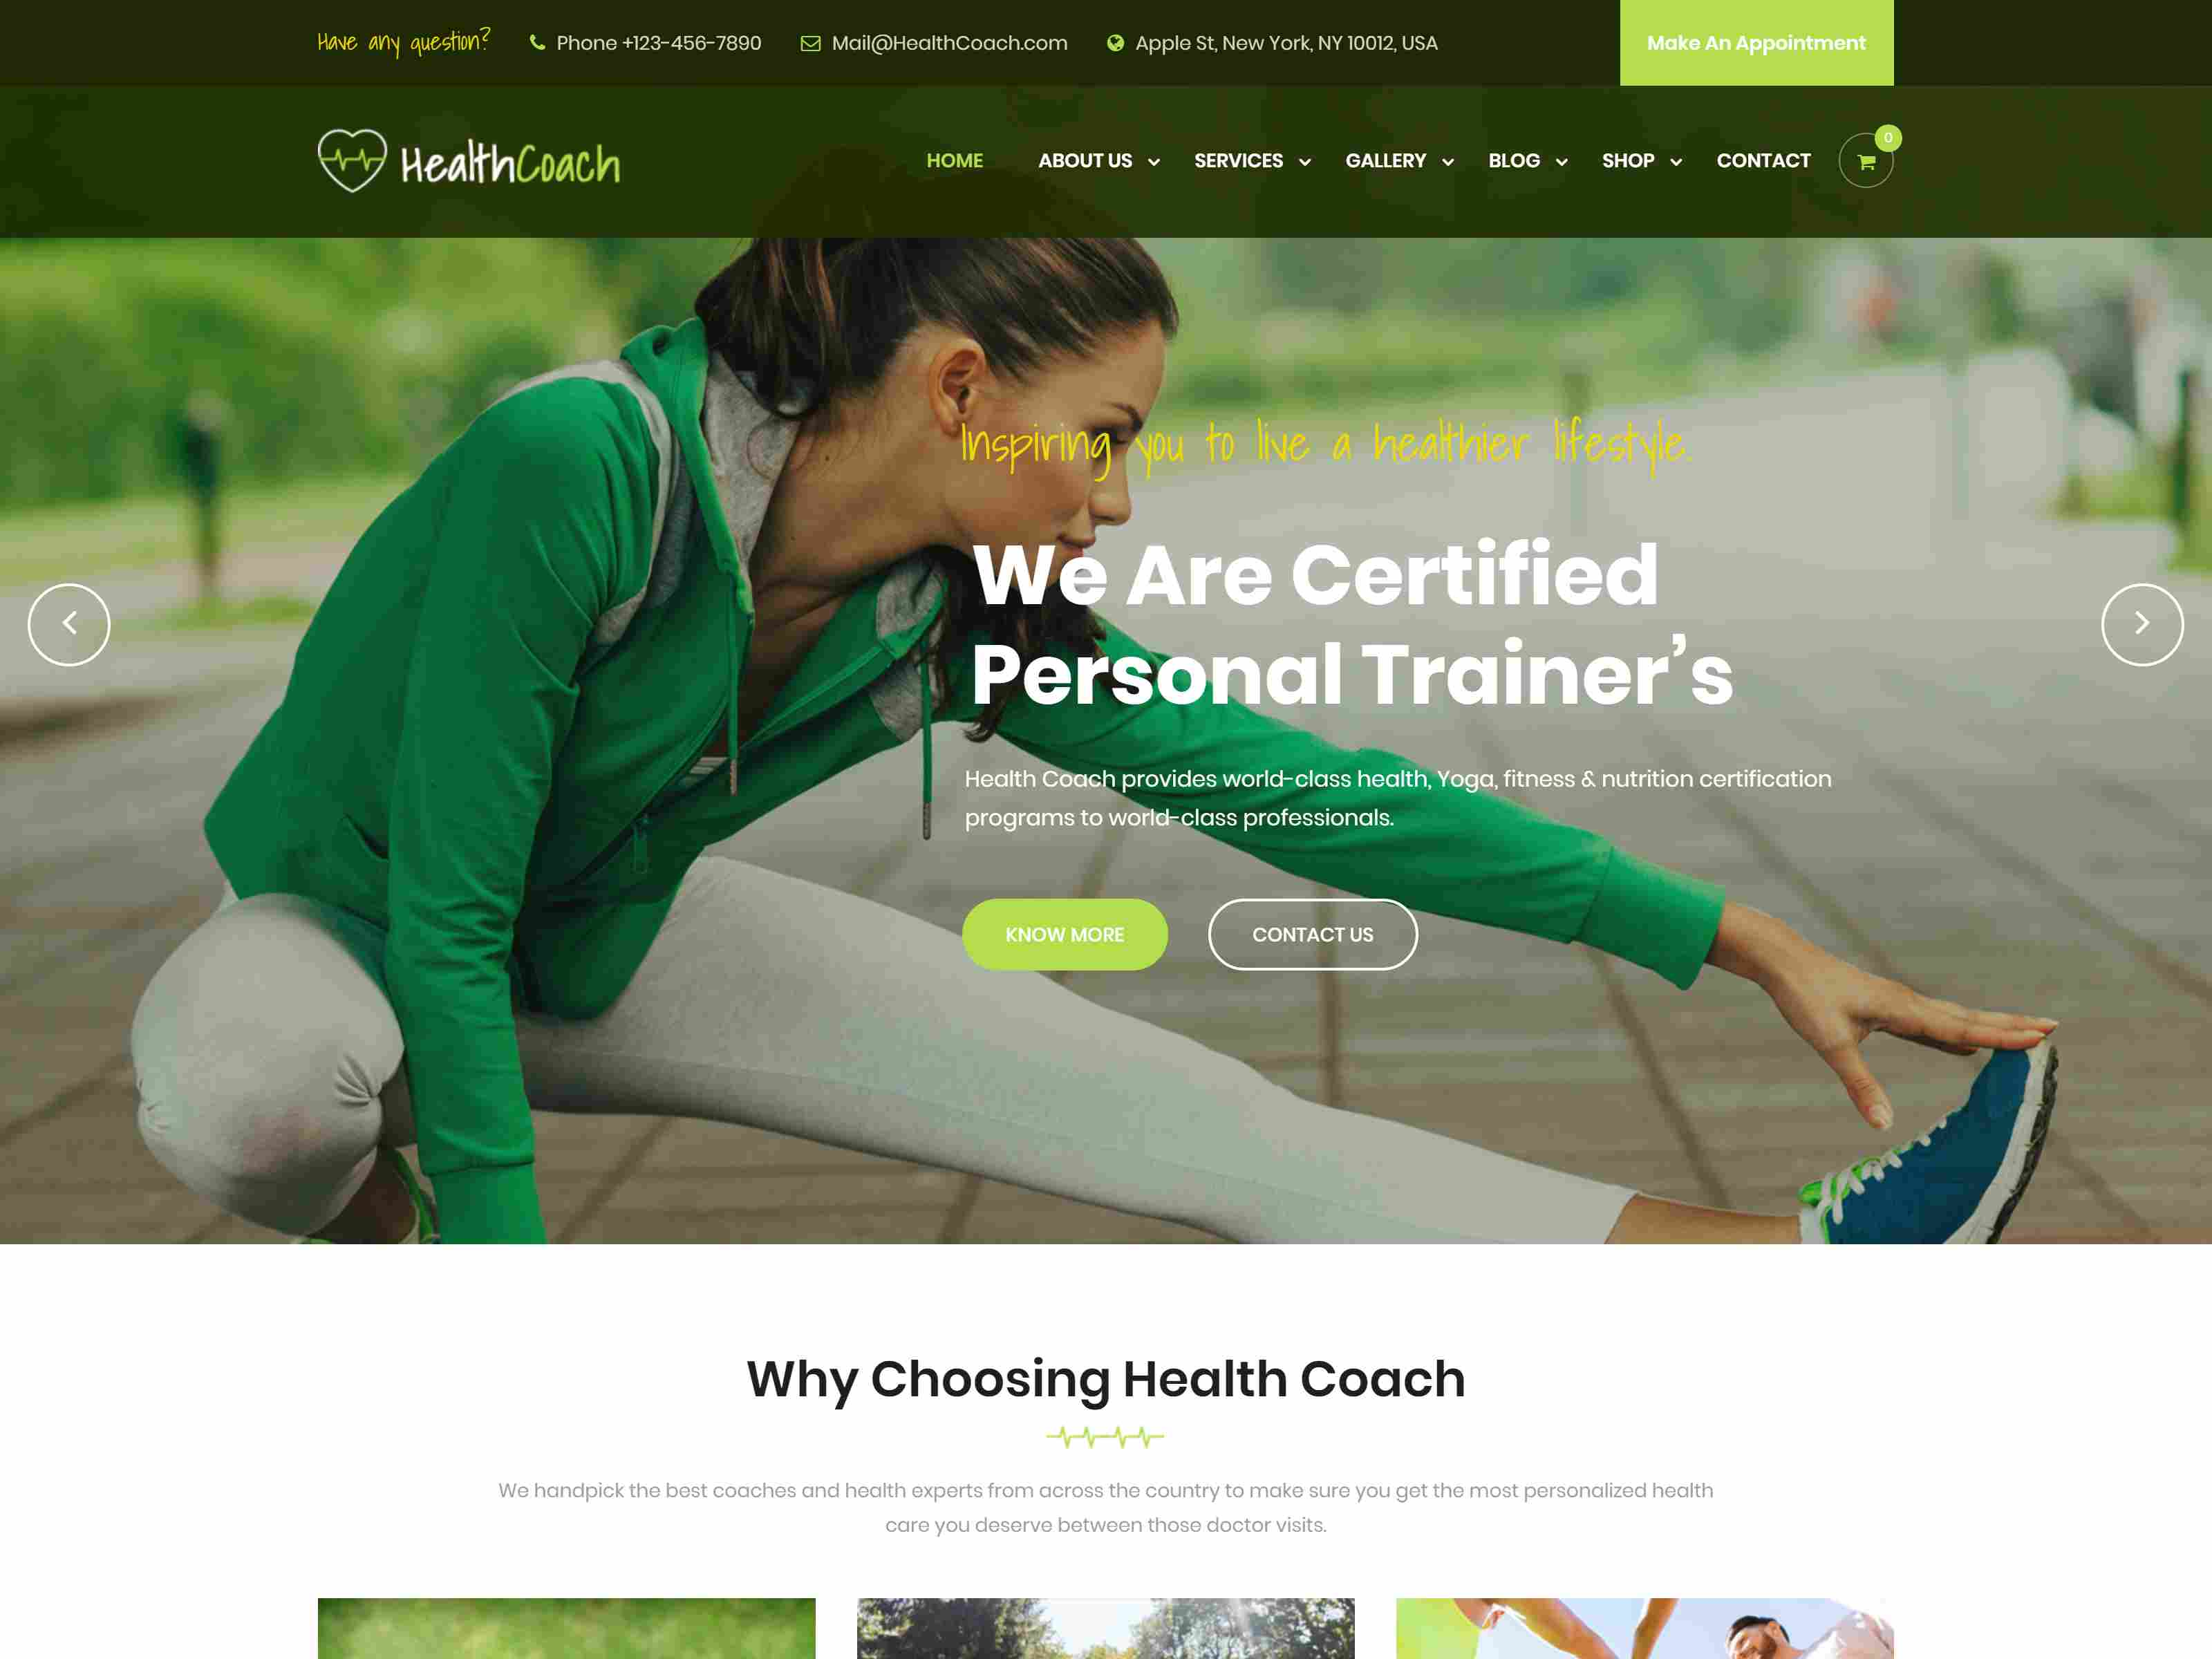 Health Coach - Joomla Template for Fitness, Health, Personal Life Coaching